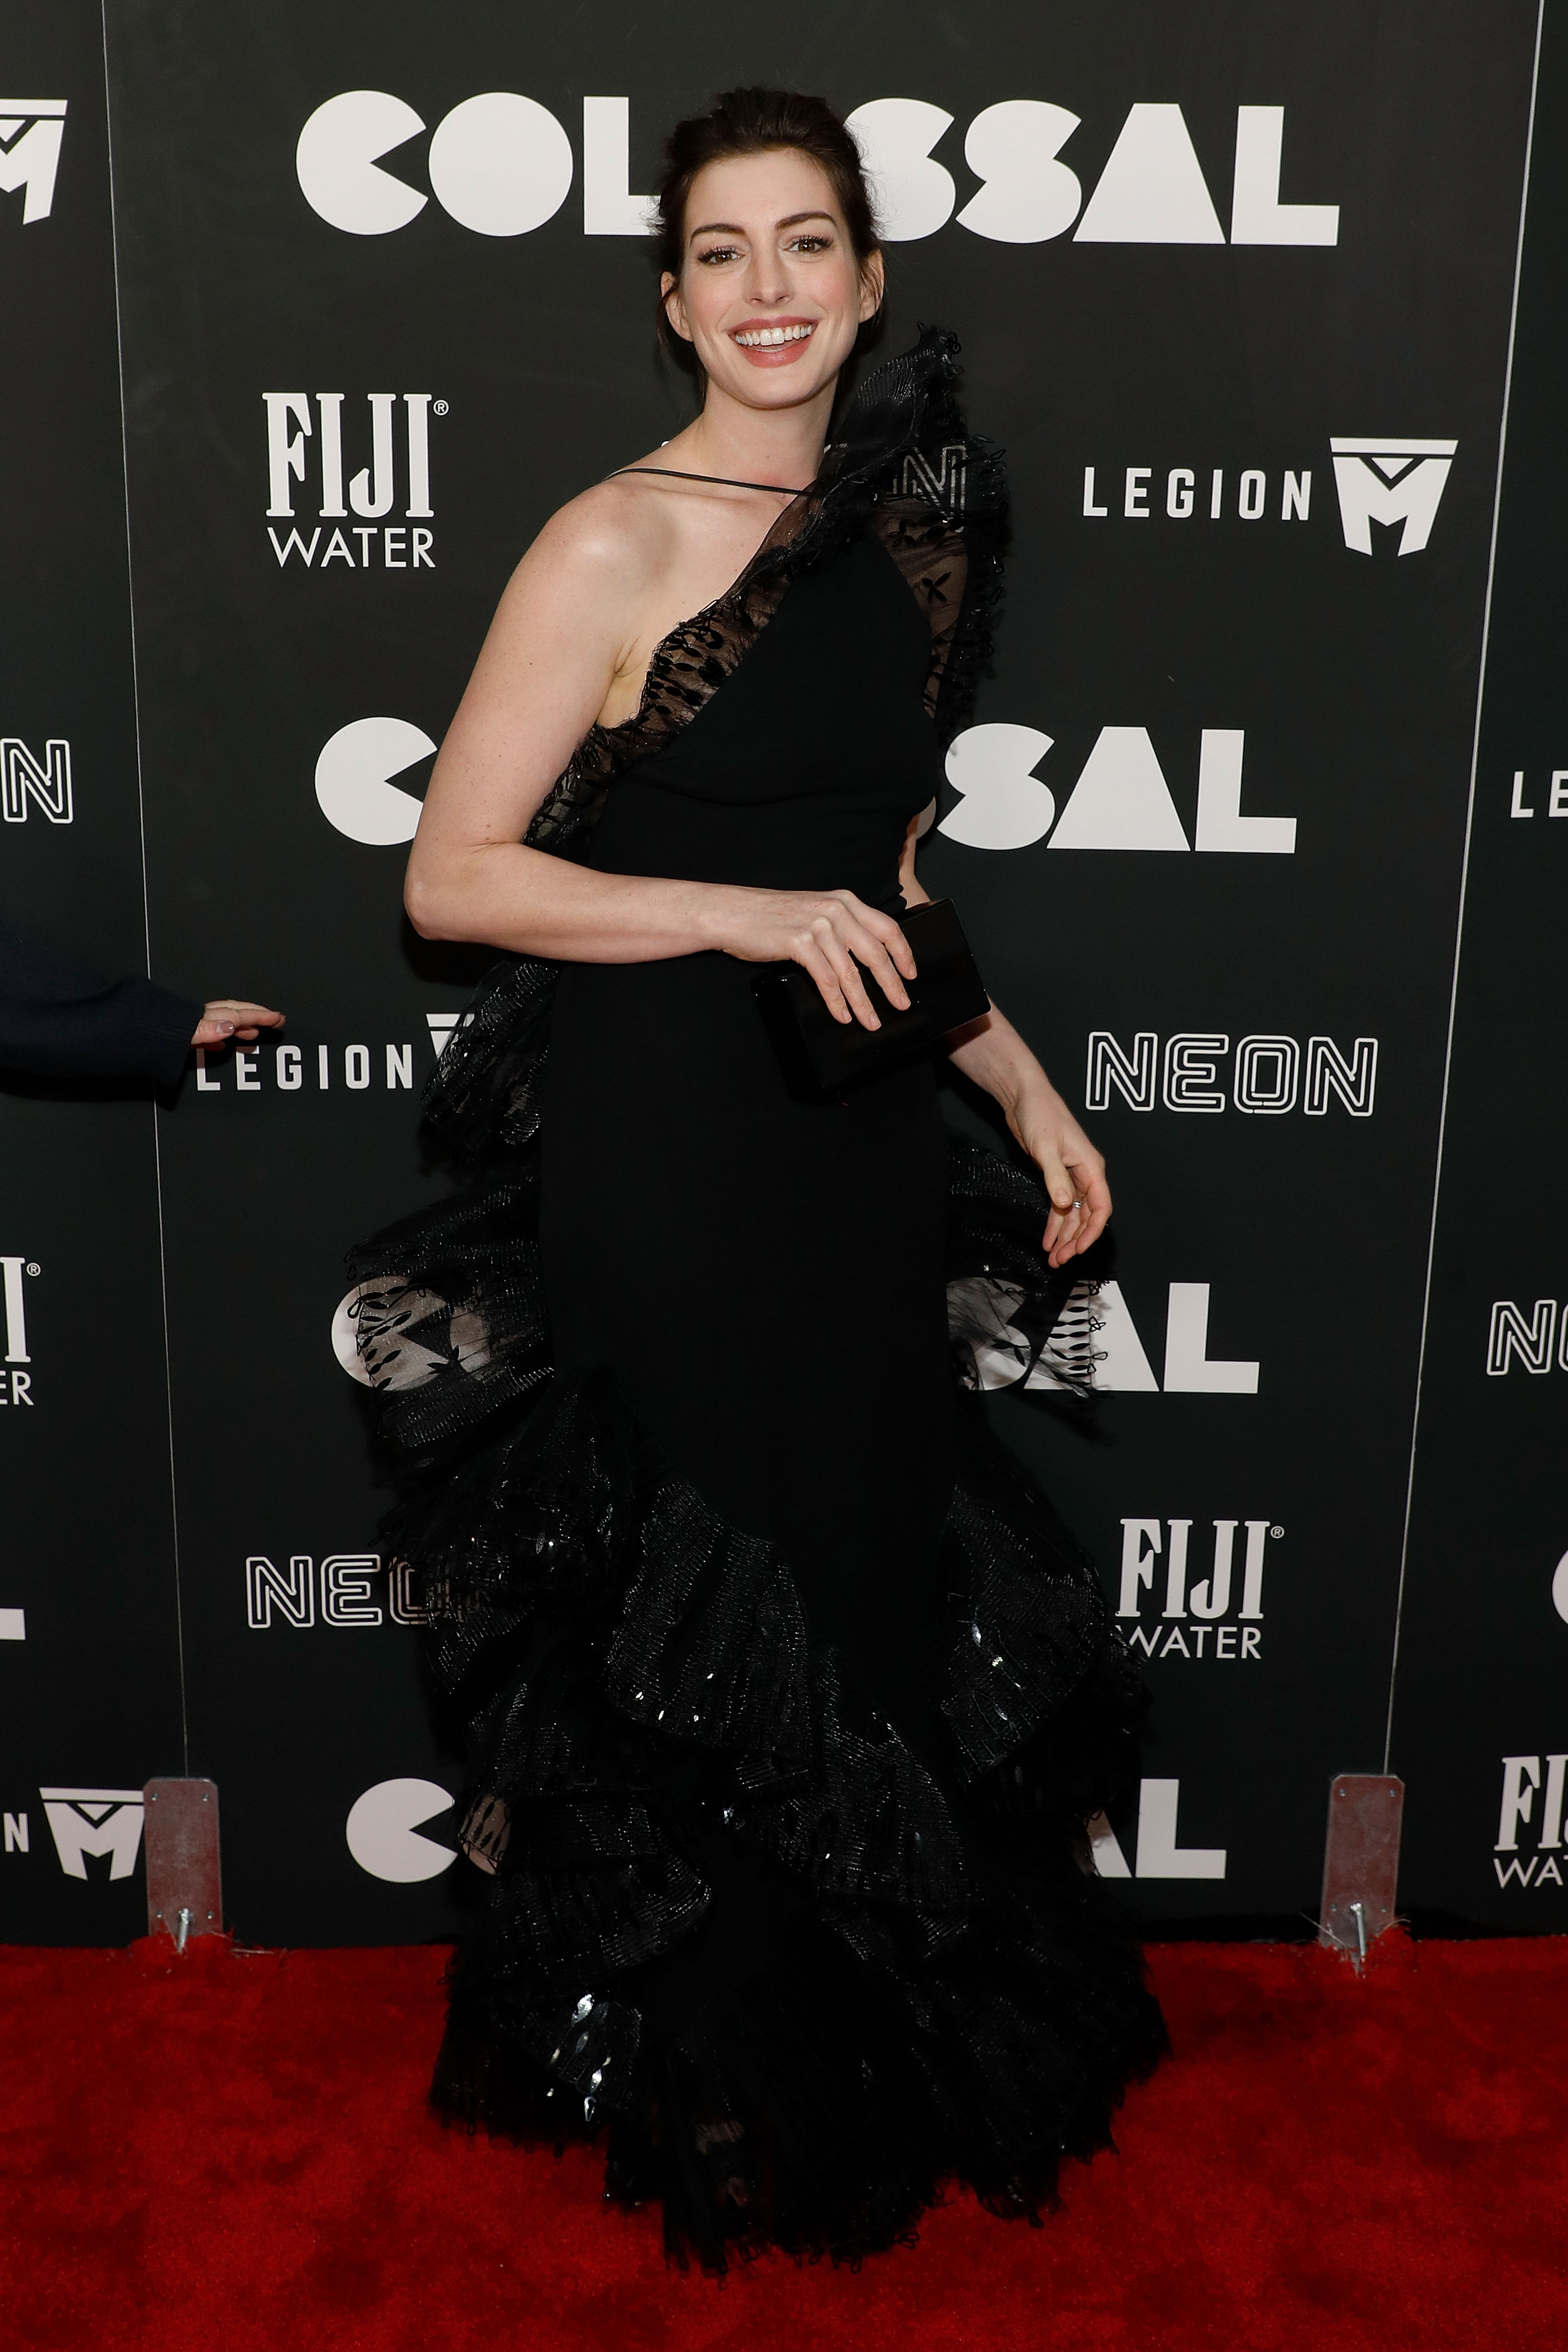 At the New York premiere of her latest movie Colossal Anne Hathaway made a statement about sustainability by having her stylist raid the Armani archives.<br /> Anne stepped out in a figure-hugging black Armani Pirve gown, with a dramatic bust line rising like Everest to her chin.<br /> Penny Lovell, Anne's stylist, has declared that the Oscar-winner will follow Emma Watson's lead and only wear outfits with a sustainable approach on the red carpet.<br /> We're hoping this means that Anne (she will always be Princess Mia to us) will drag out some of these looks from her walk-in wardrobe.